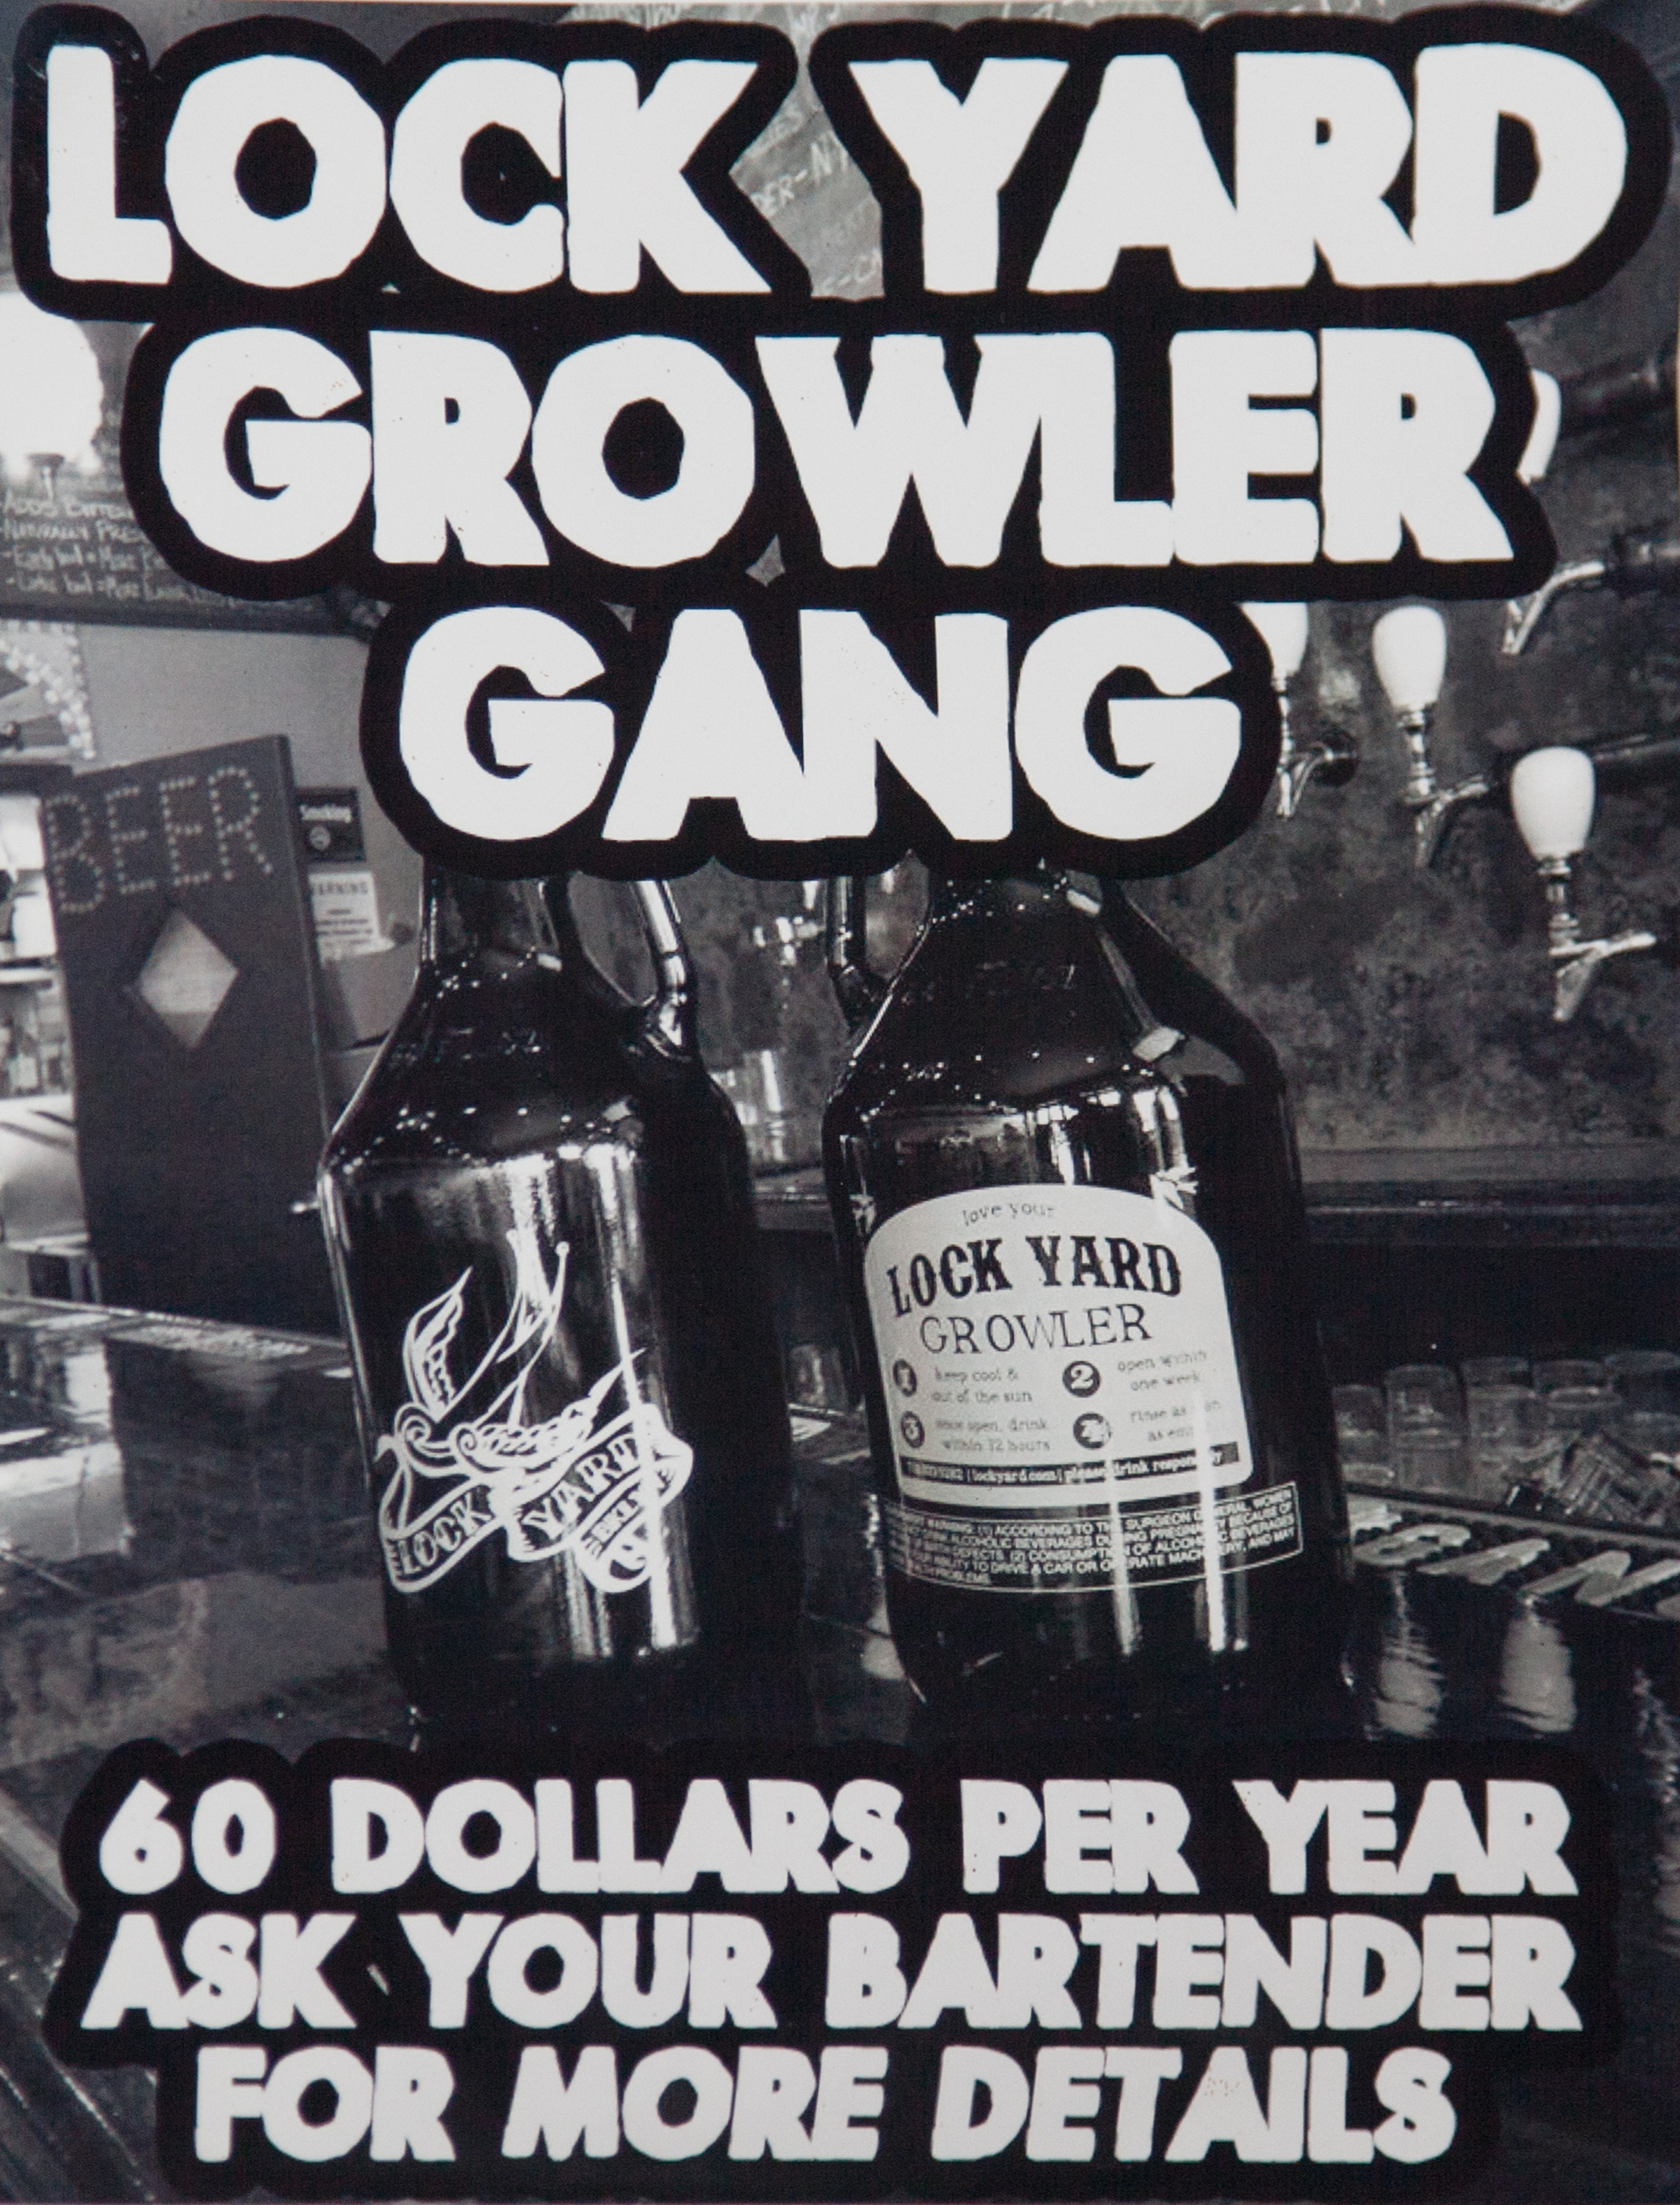 Lock Yard Growler Gang Poster